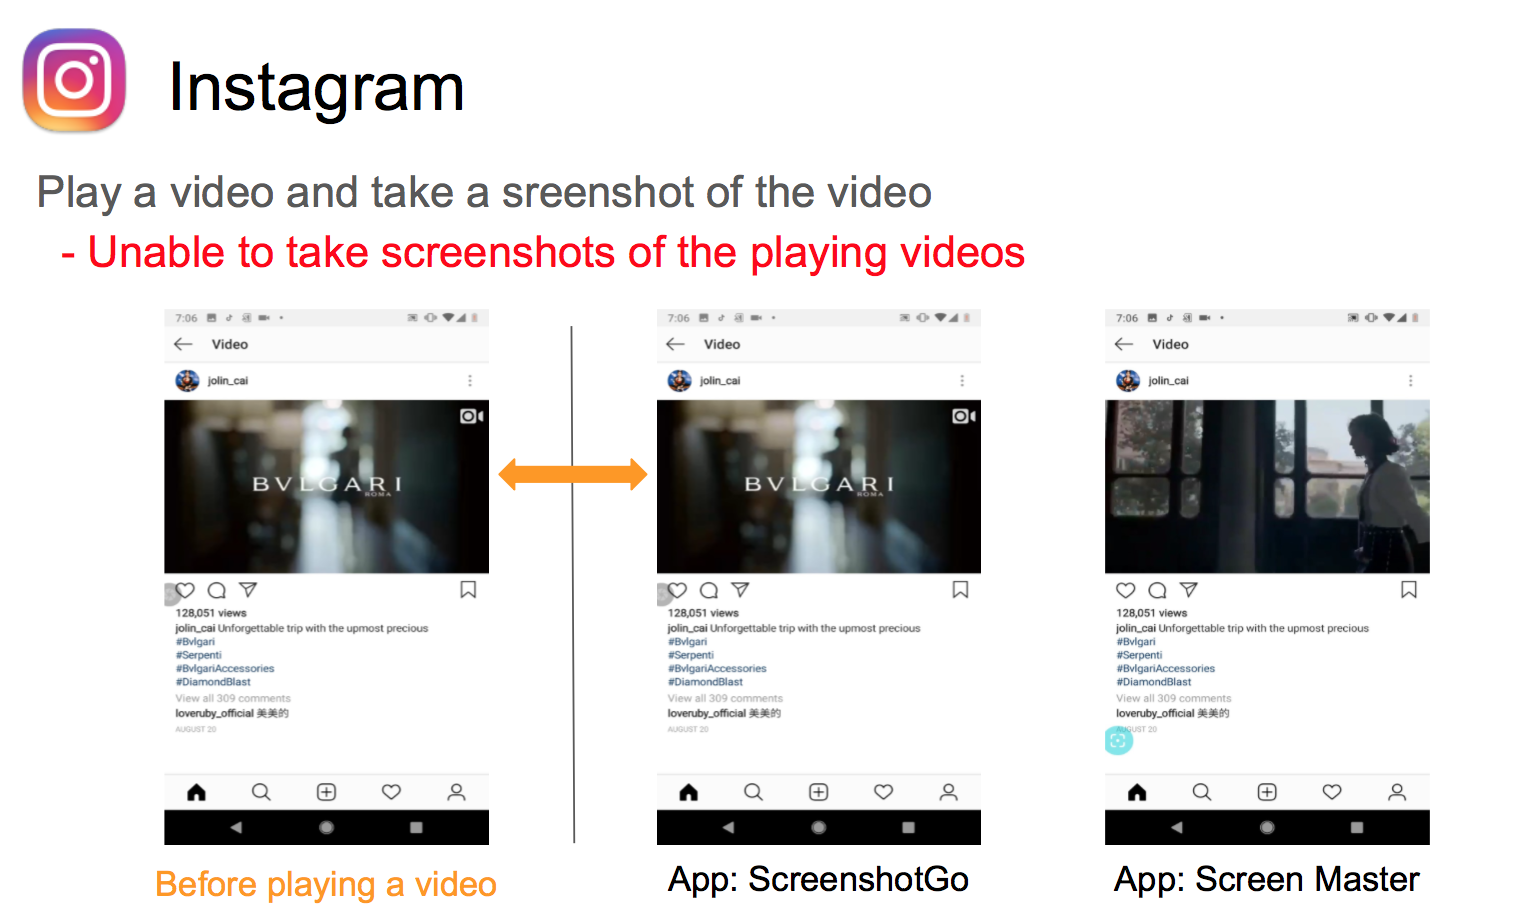 Unable to take a screenshot of the playing video (App: SHAREit